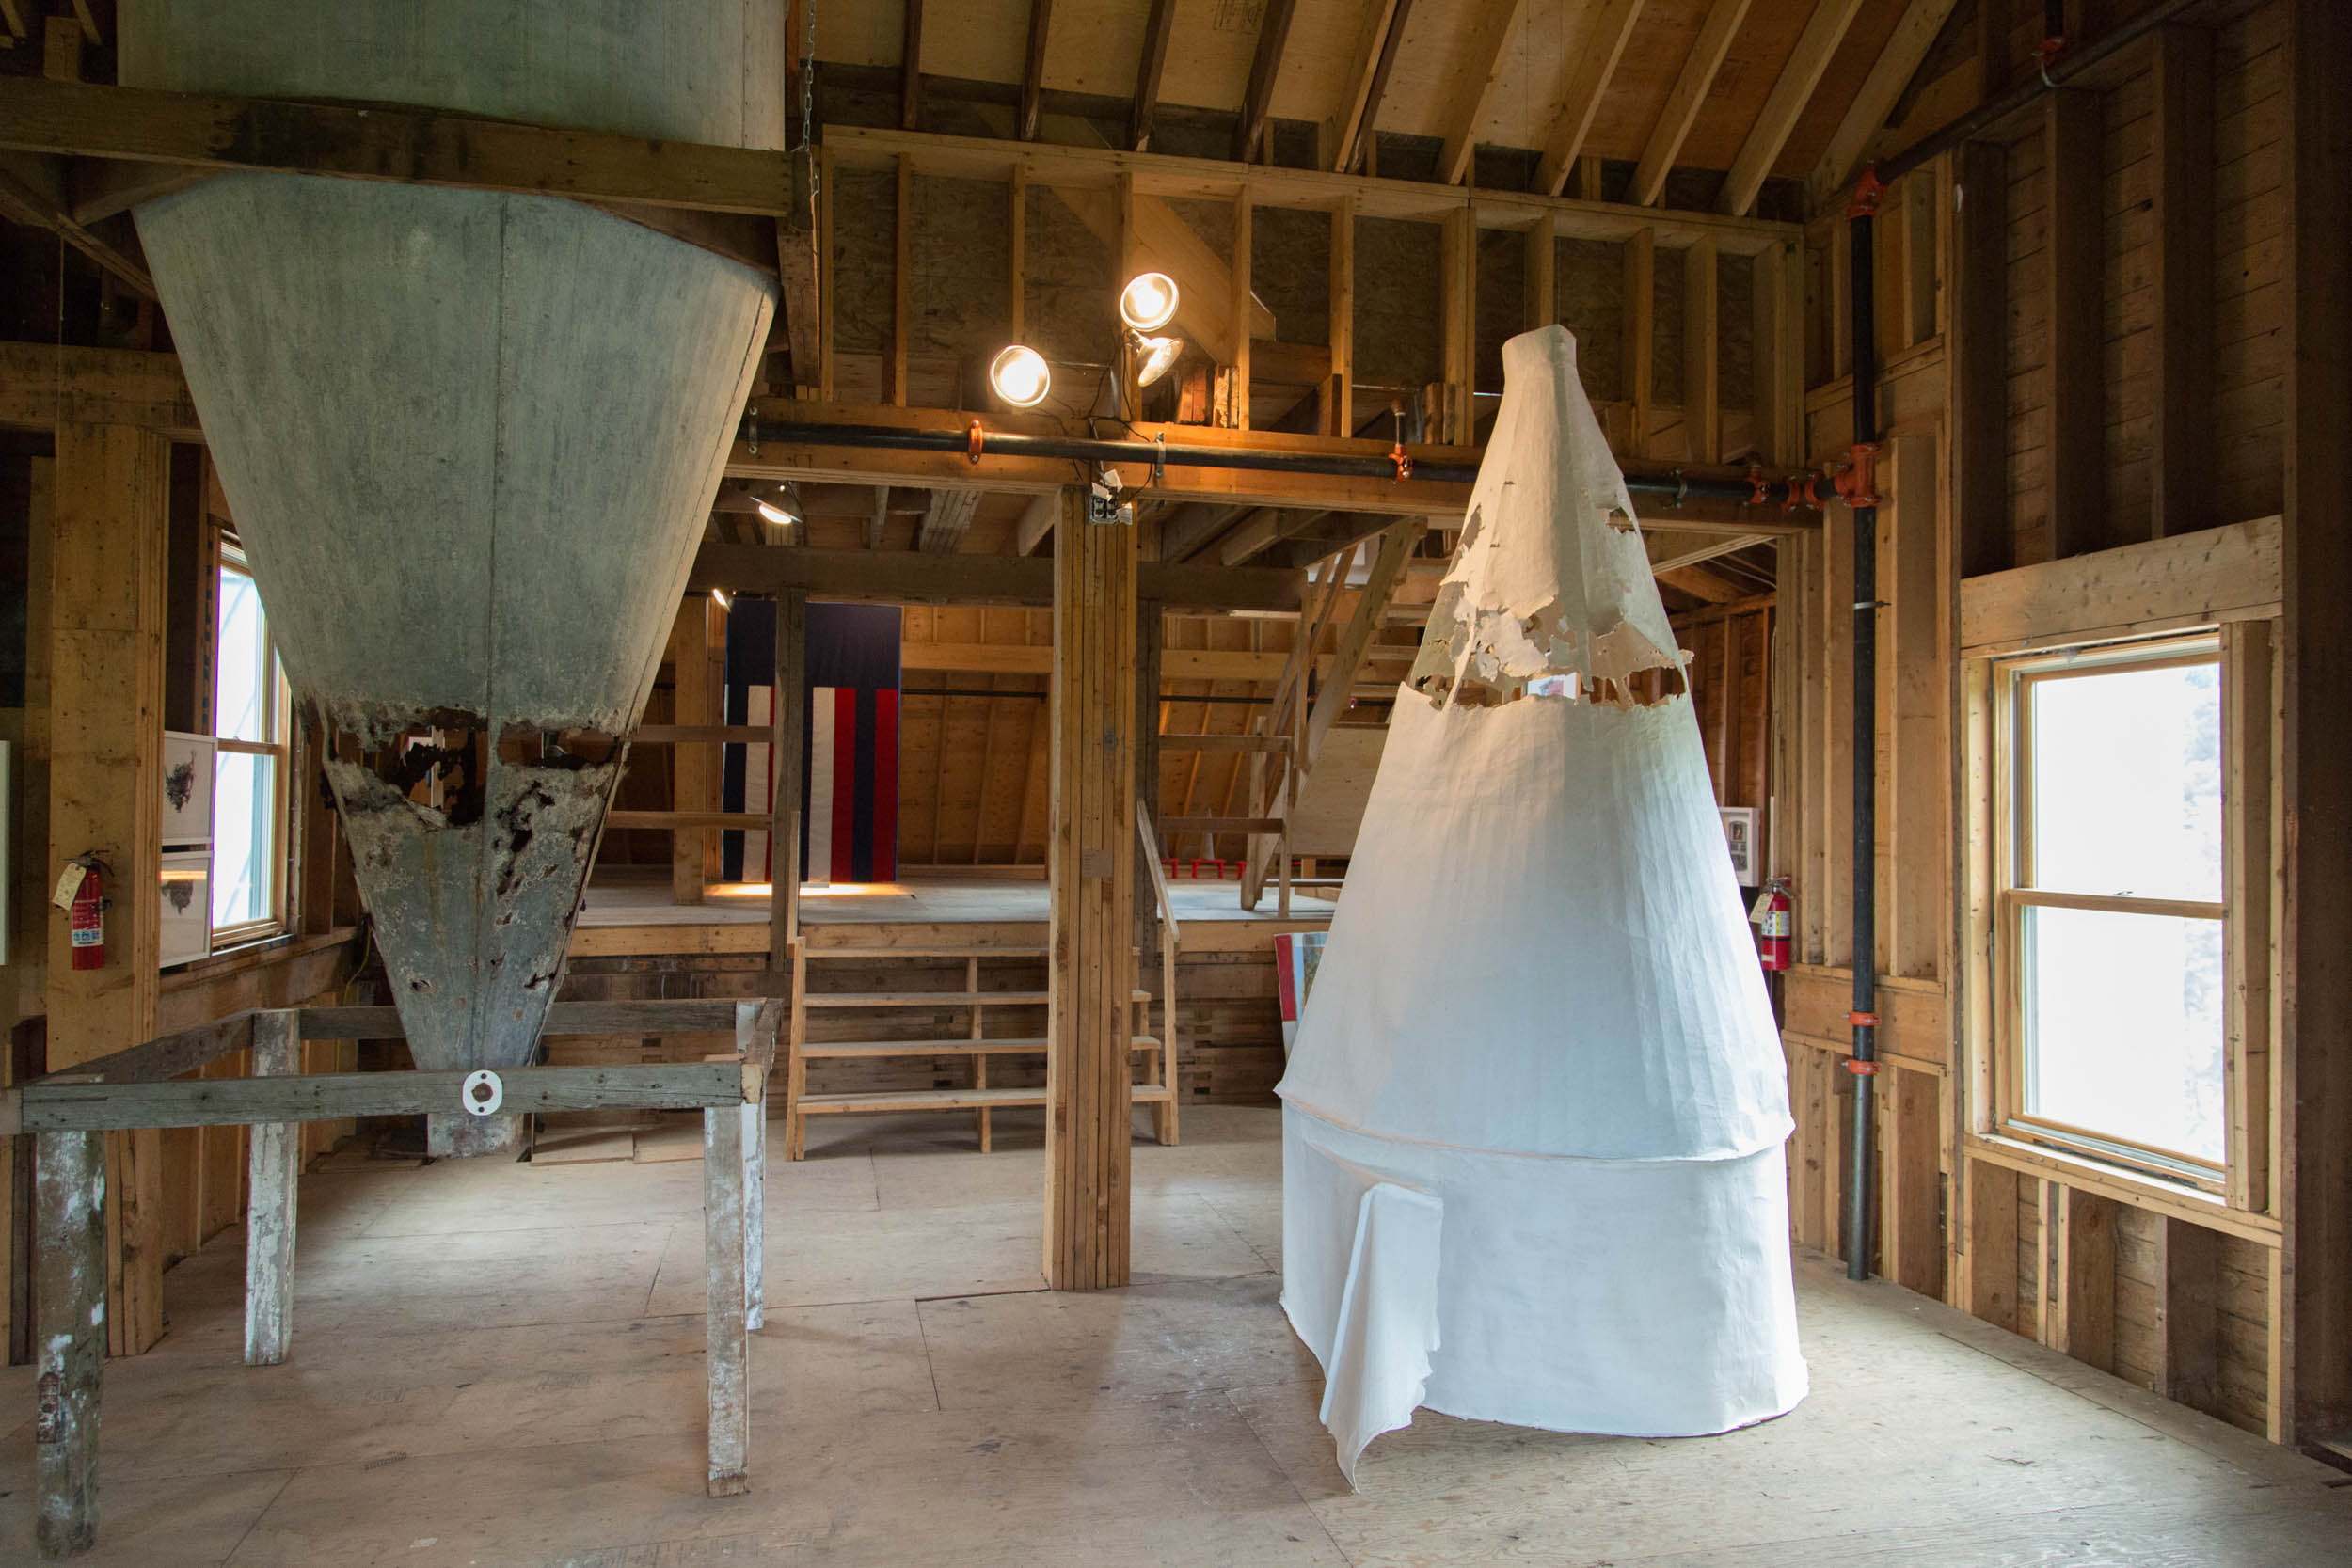 wassaic-project-artist-kelly-goff-2012-06-25-13-08-29.jpg